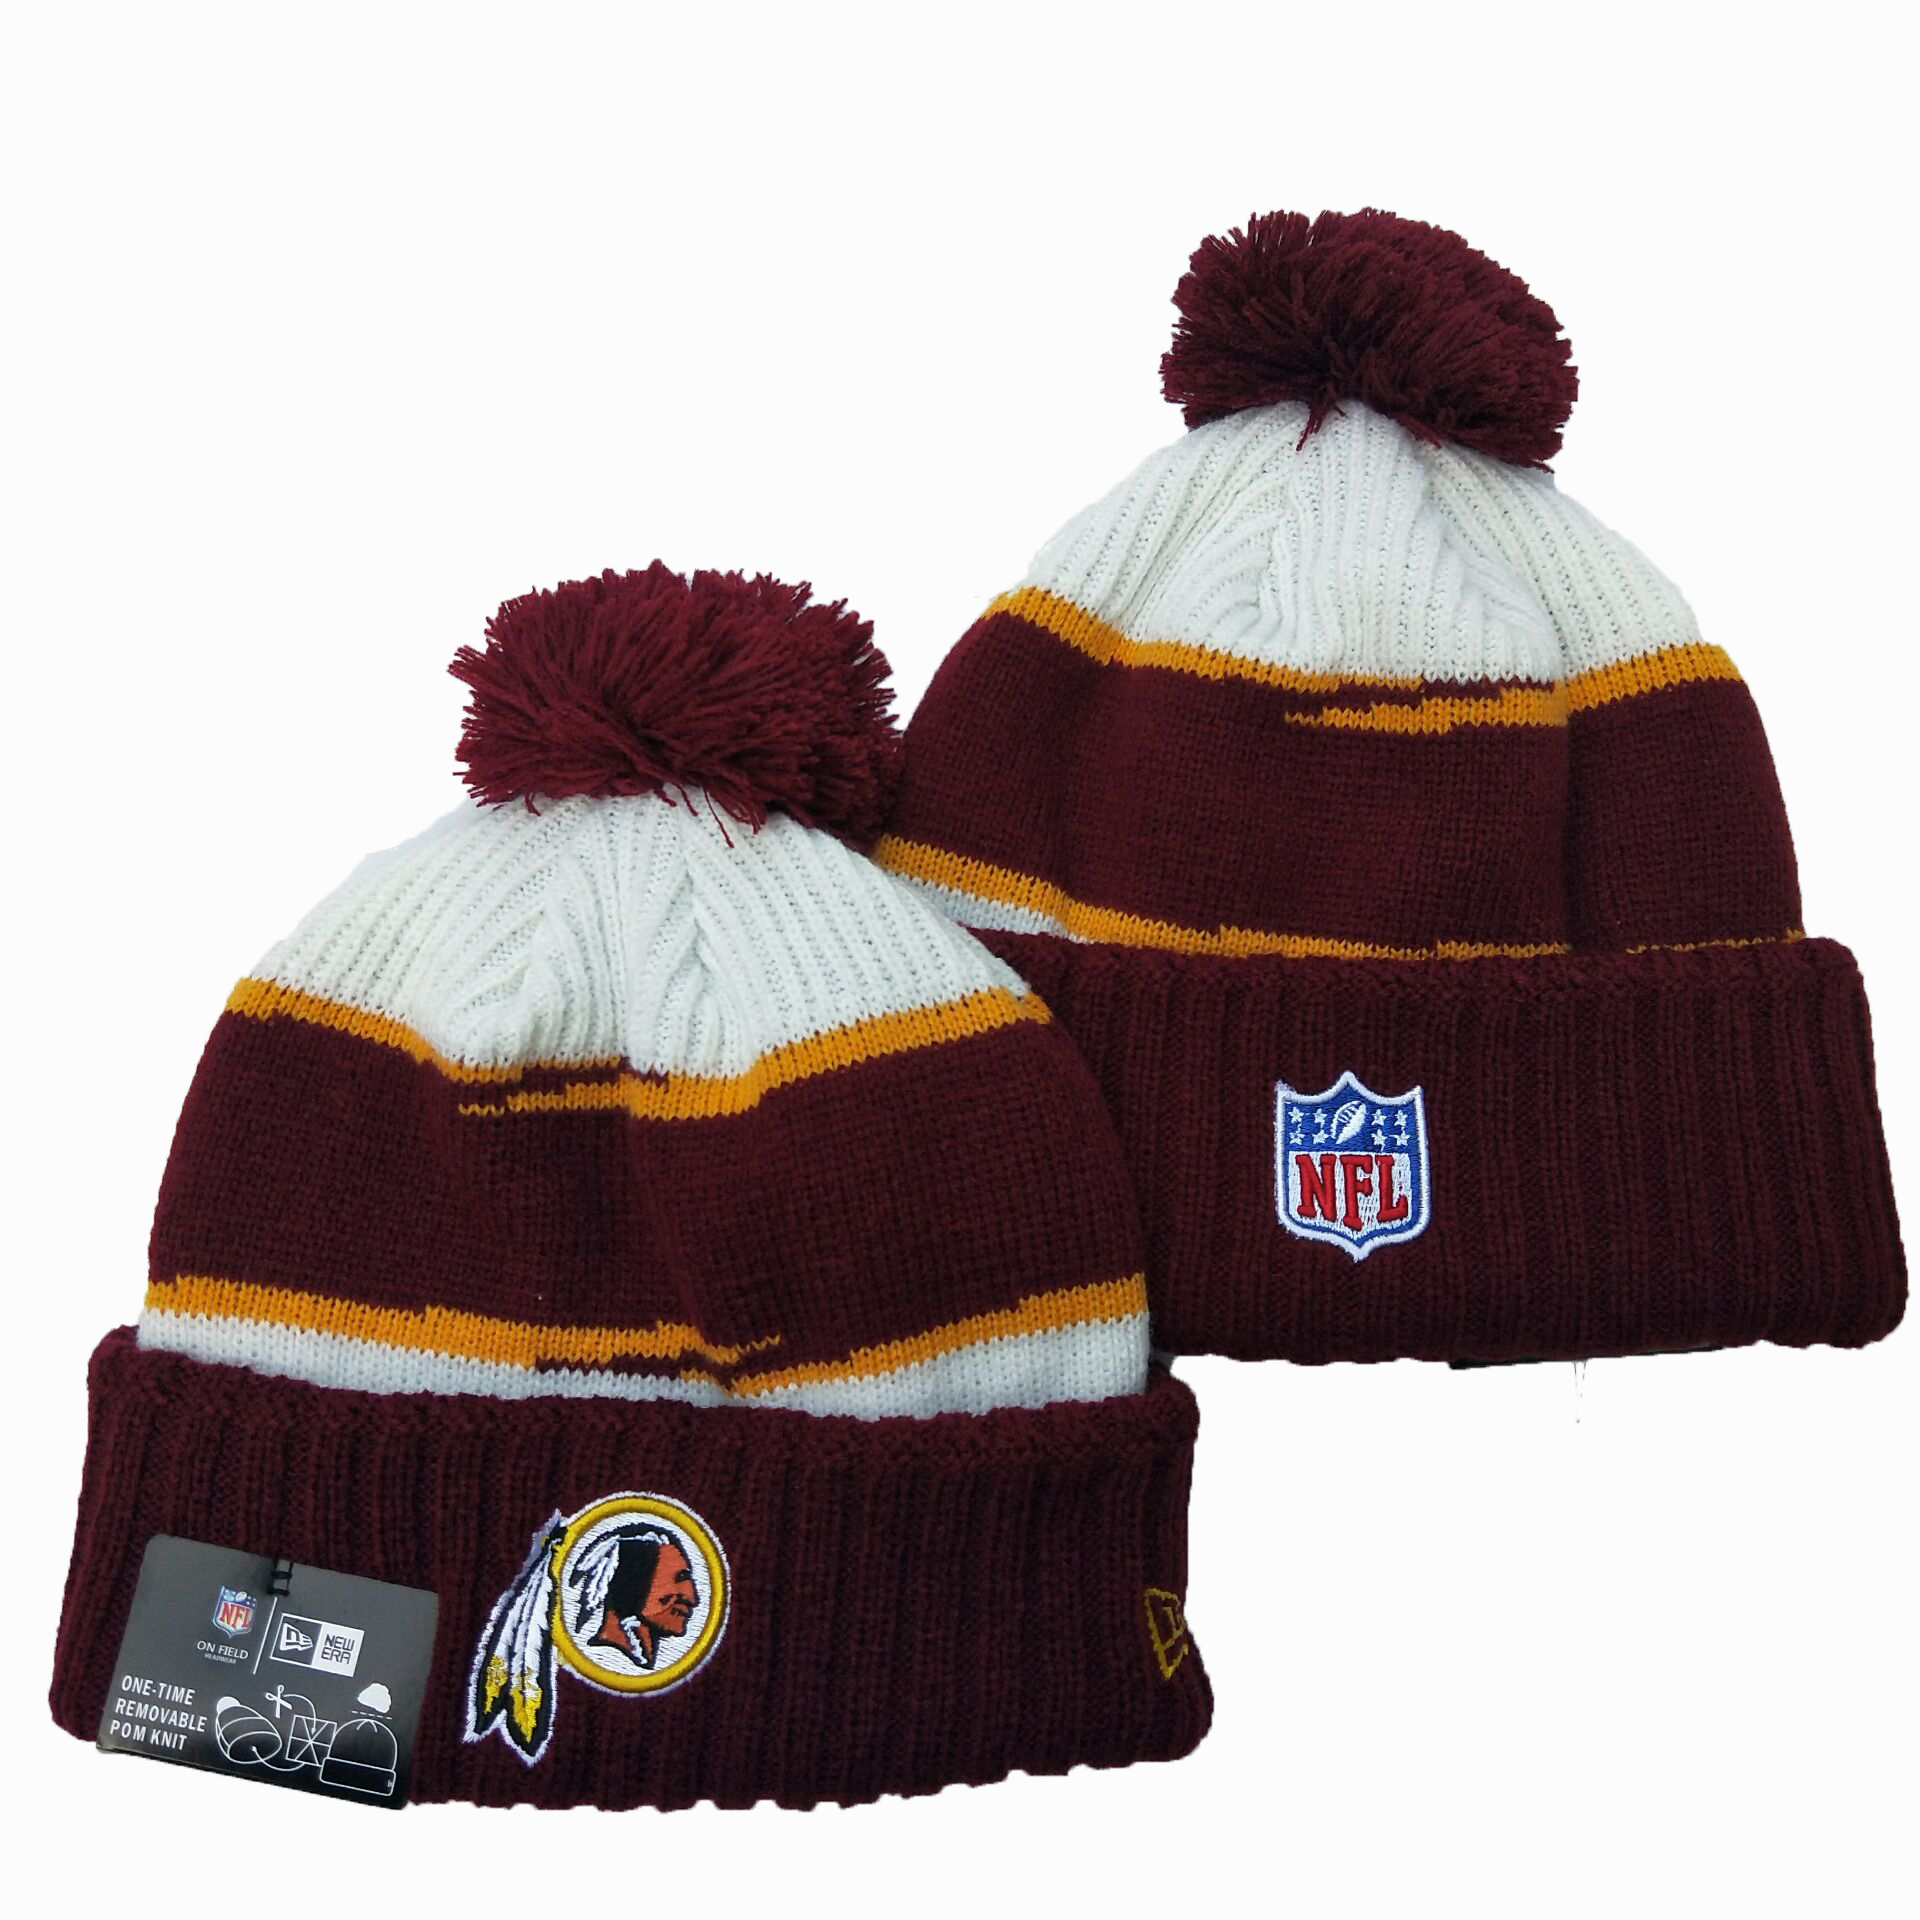 Redskins Team Logo Red Pom Knit Hat YD